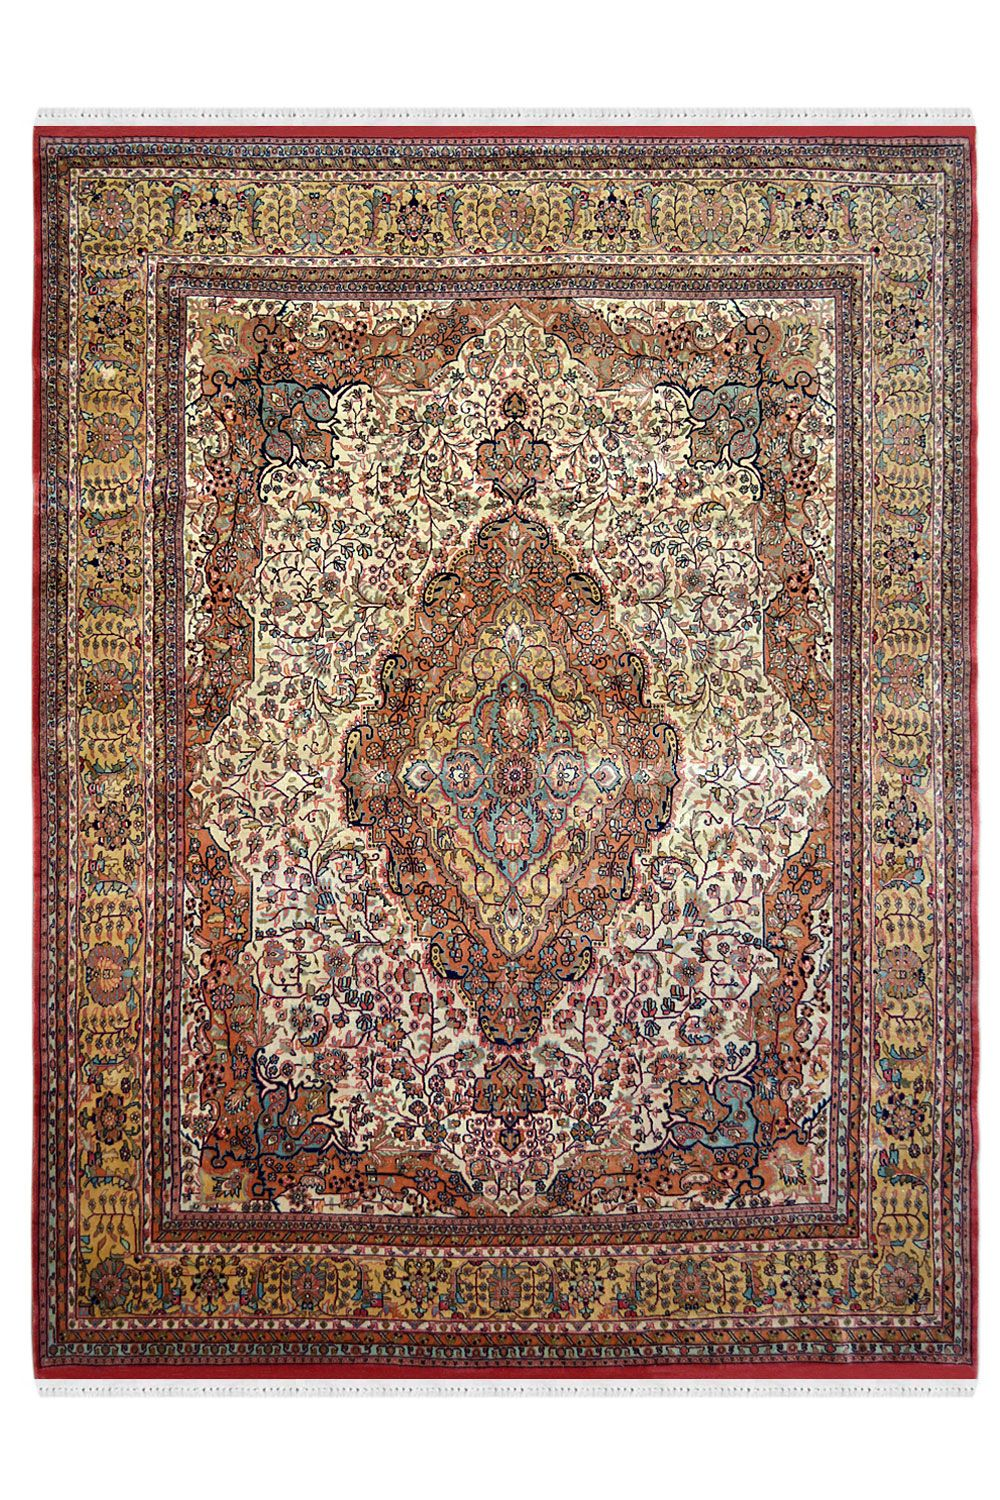 Buy One Of A Kind Central Medallion Handknotted Wool Area Rug Wool Area Rugs Area Rugs Rugs